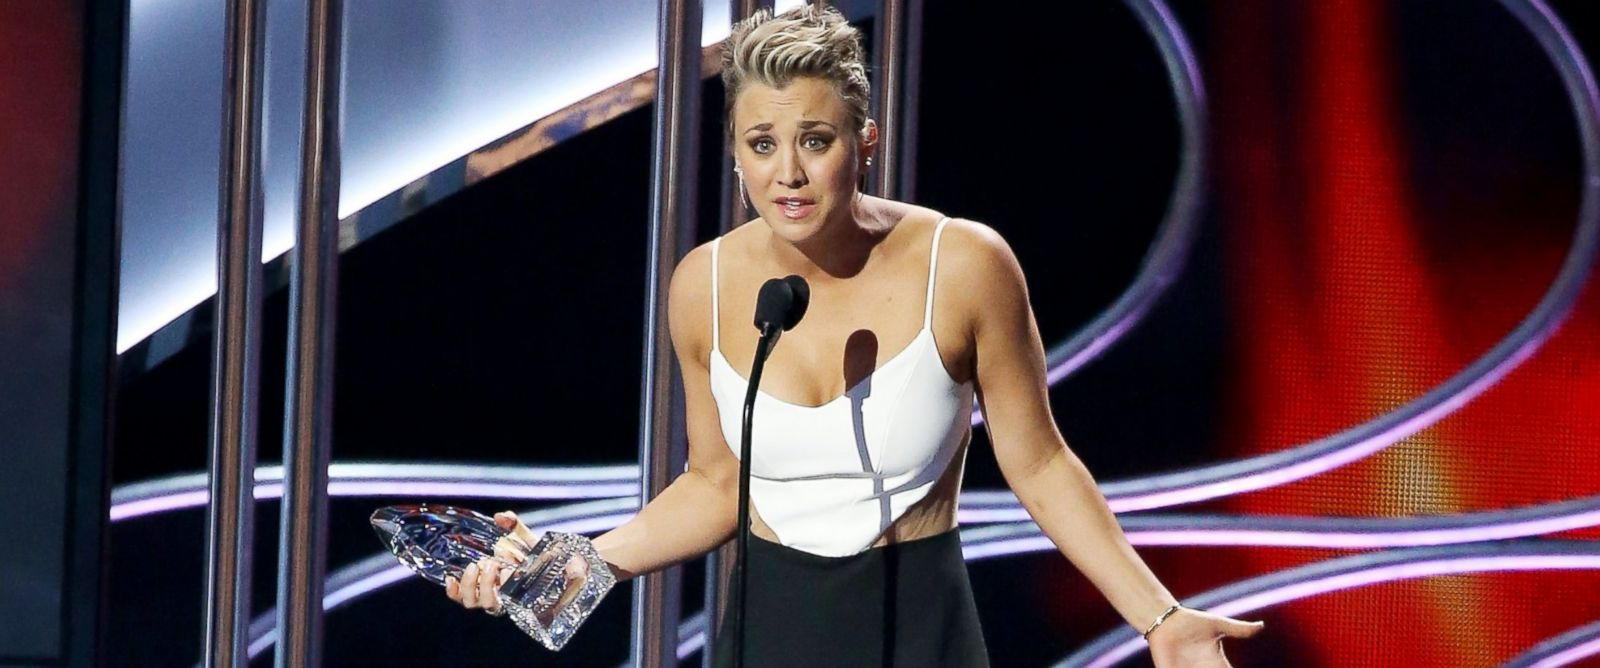 PHOTO: Kaley Cuoco-Sweeting speaks onstage during The 41st Annual Peoples Choice Awards held at Nokia Theatre L.A. Live, Jan. 7, 2015, in Los Angeles.